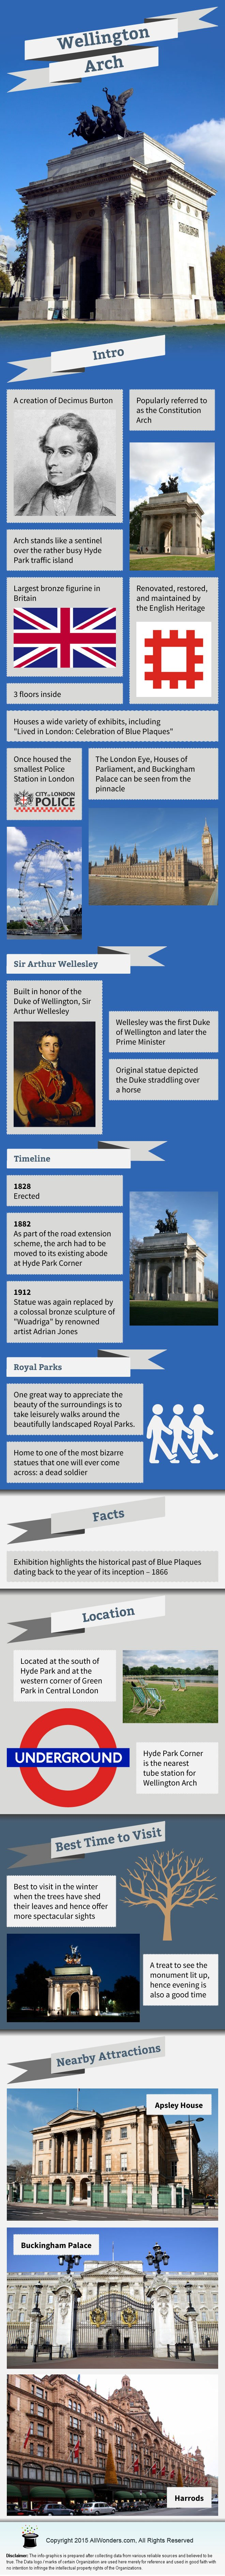 Wellington Arch Infographic